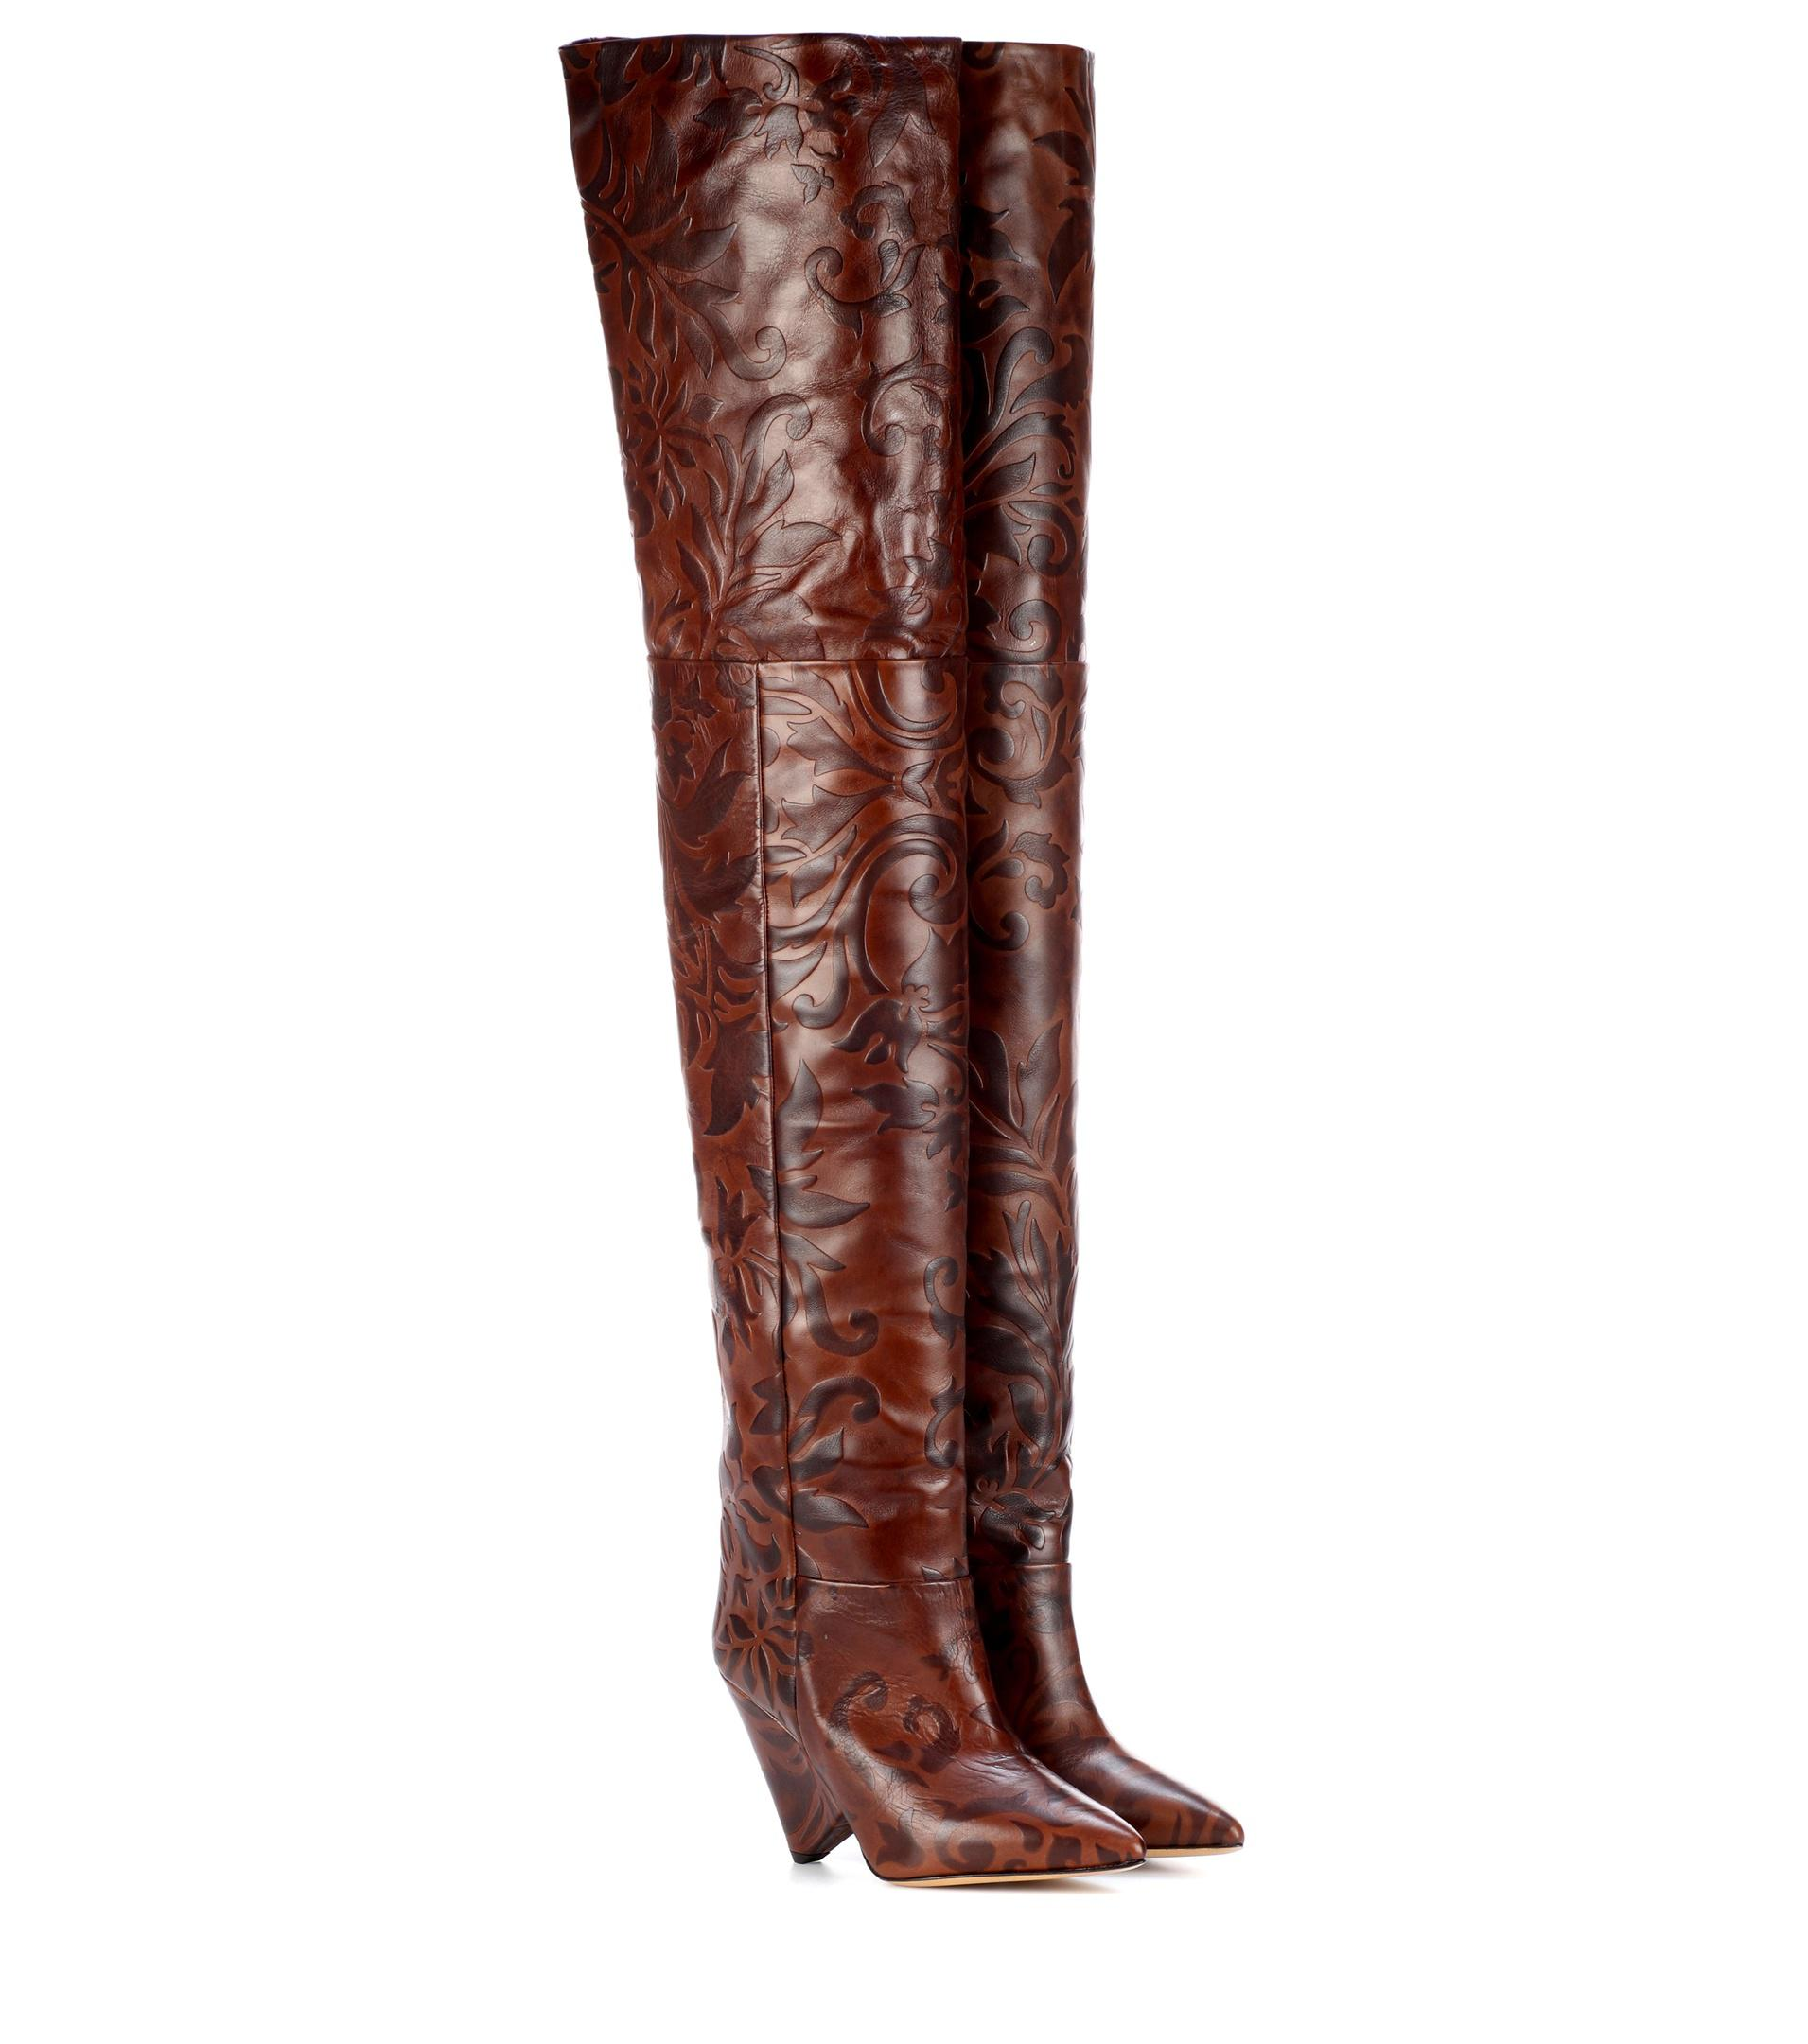 588c297fde3 Isabel Marant Lostynn Embossed Leather Boots in Brown - Lyst